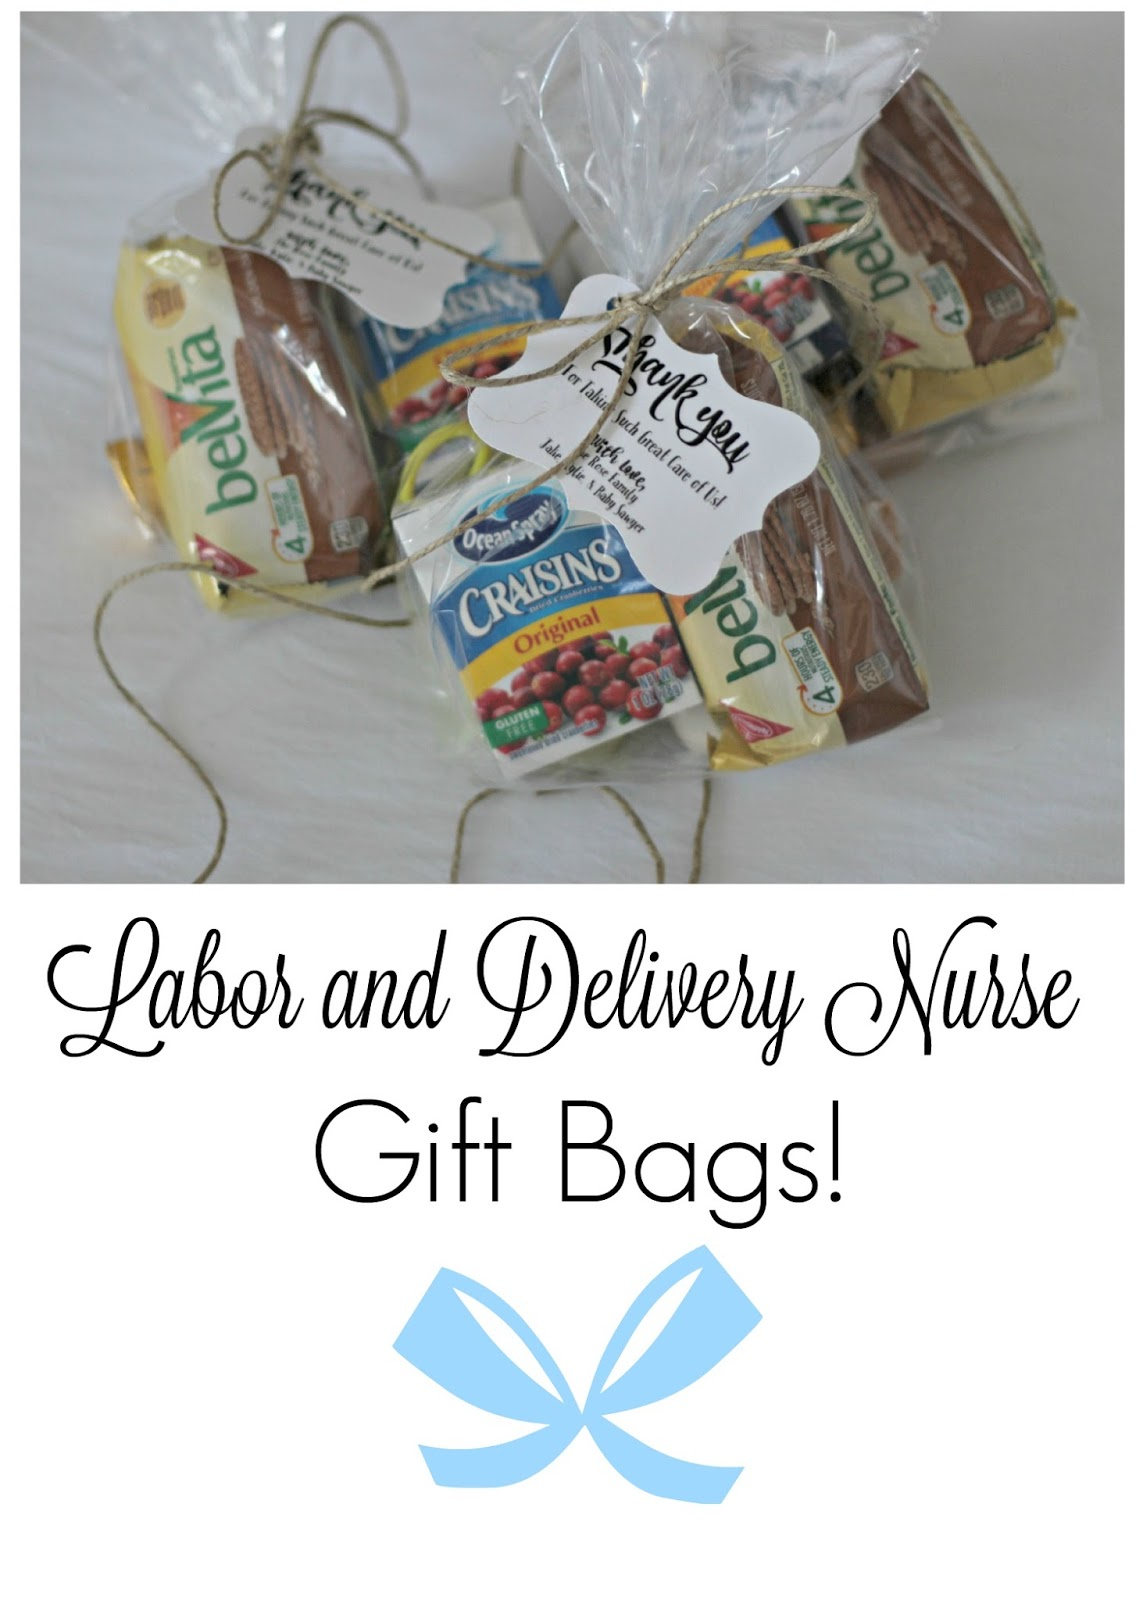 Rose Co Blog Labor Delivery Nurse Gift Bags